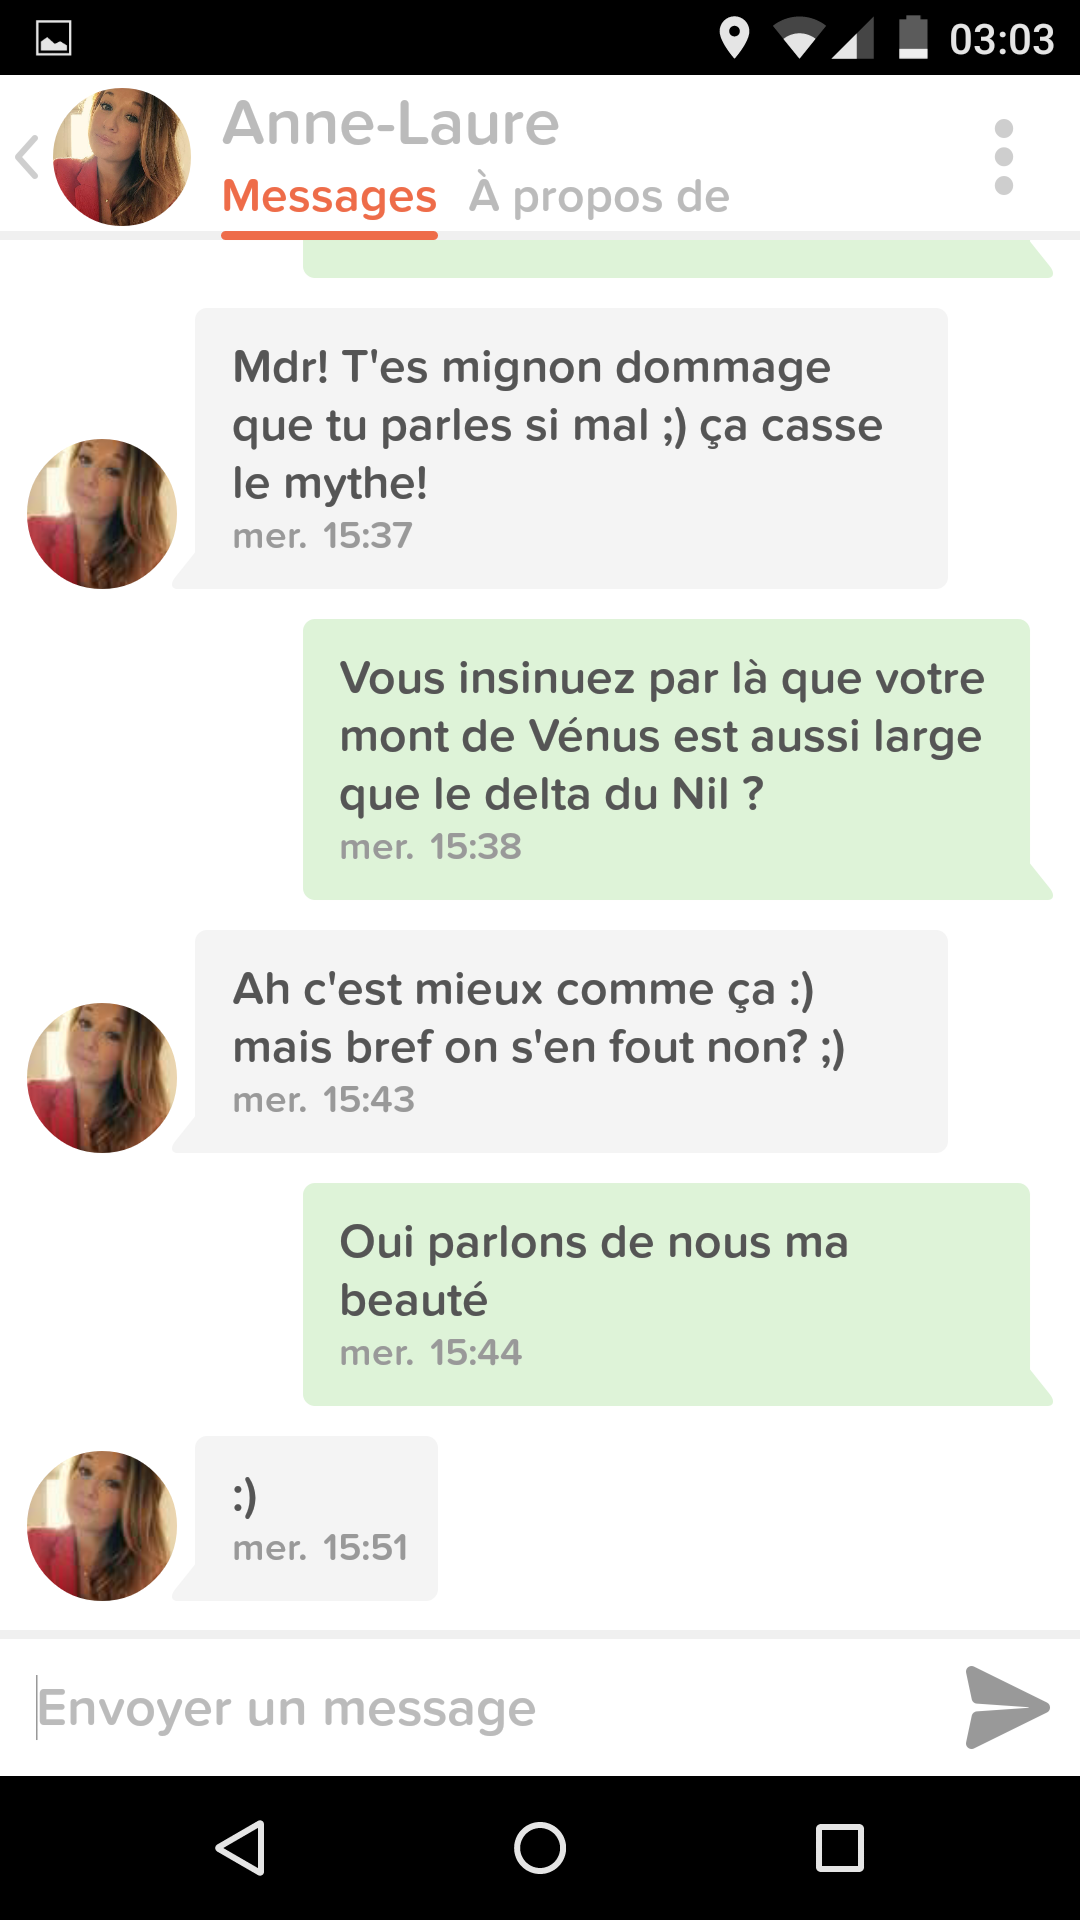 1429838749-anne-laure-2.png